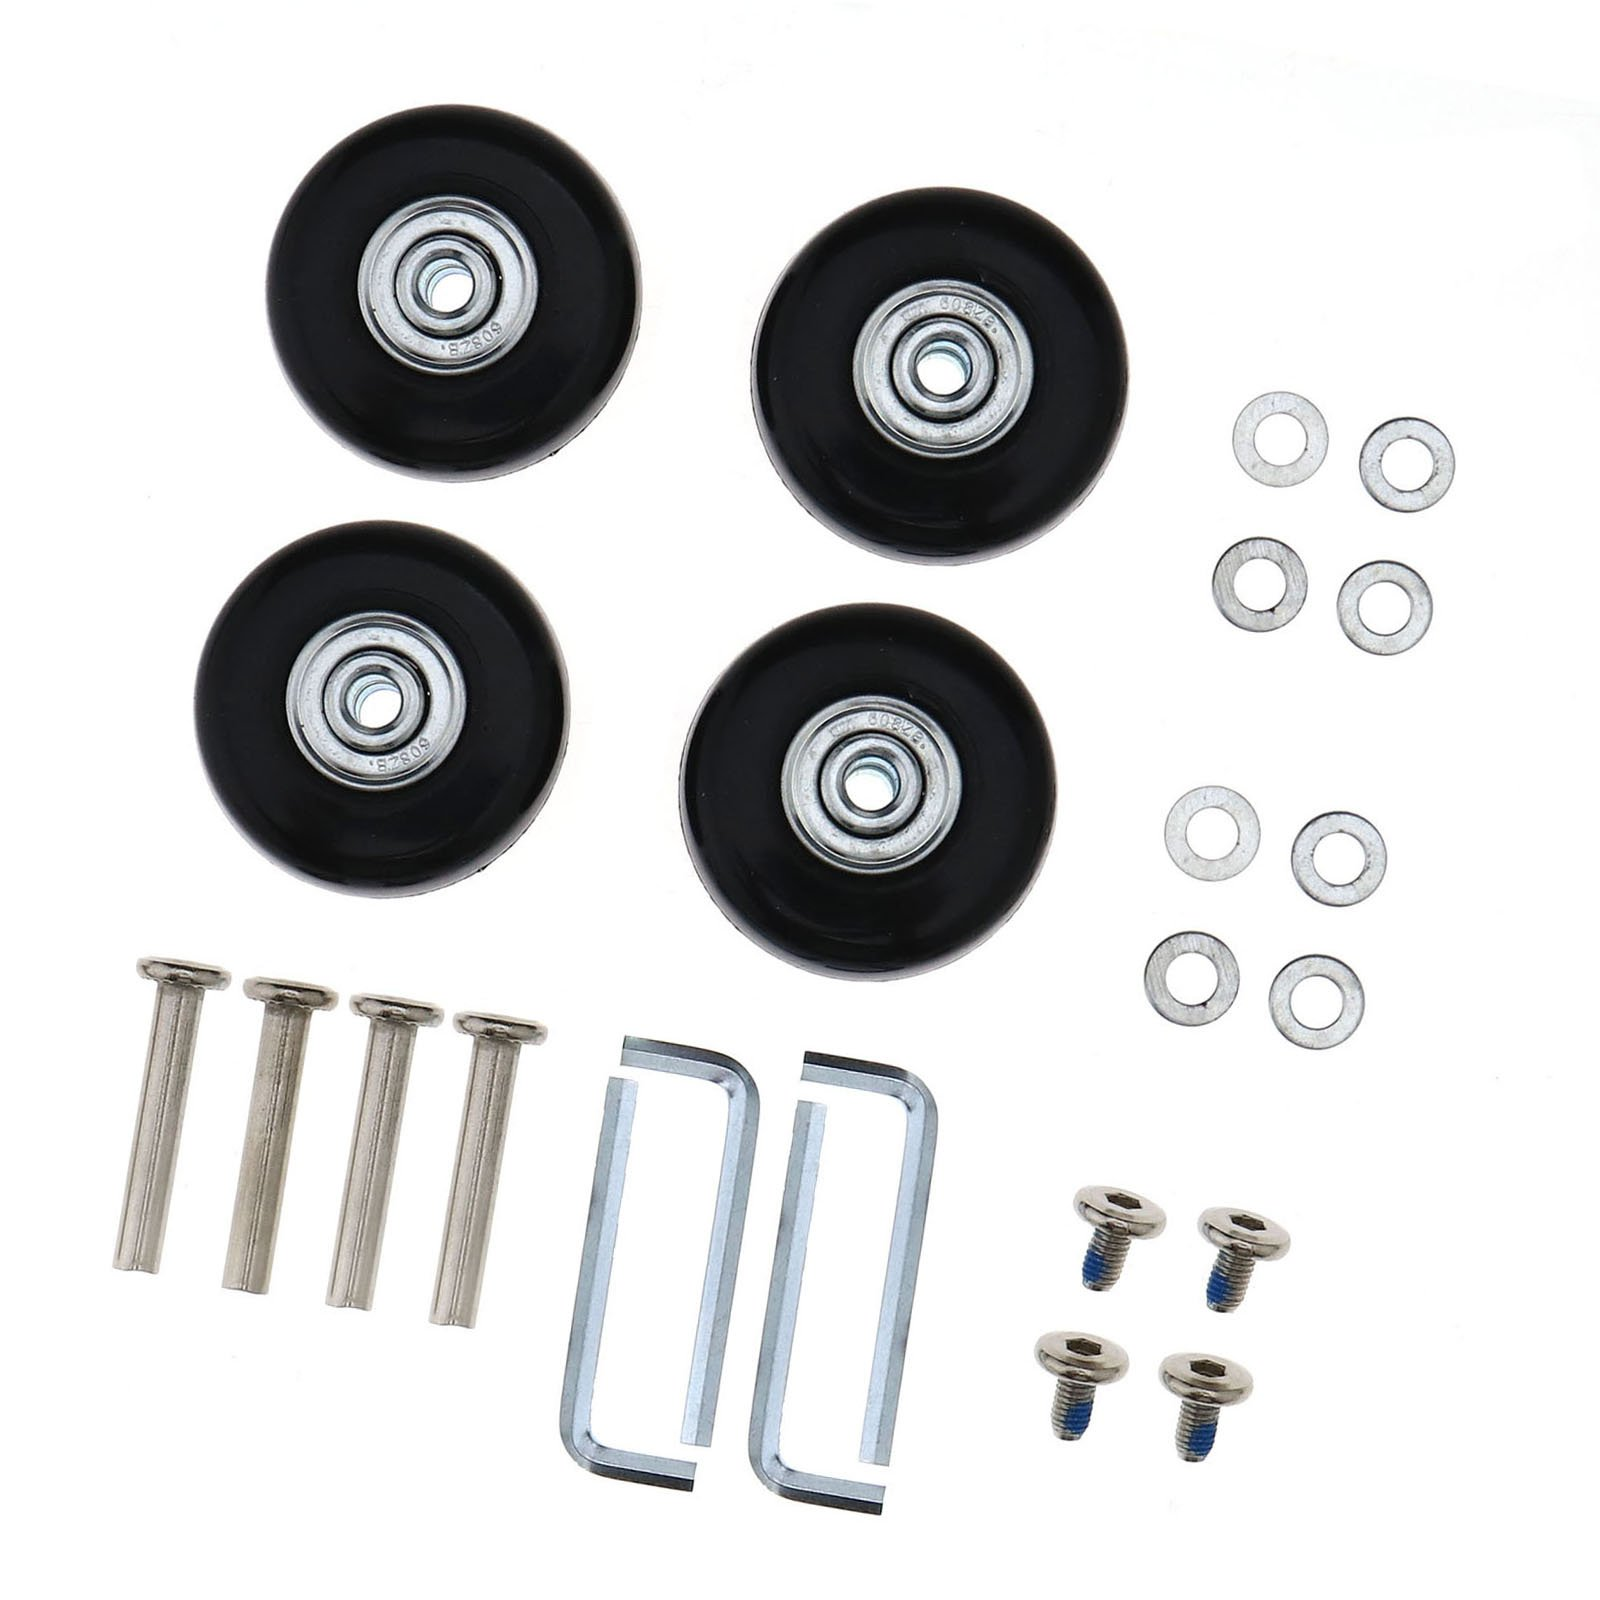 SING F LTD 2 Pairs Luggage Suitcase Replacement Wheels Axles Rubber Deluxe Repair OD 45mm by SING F LTD